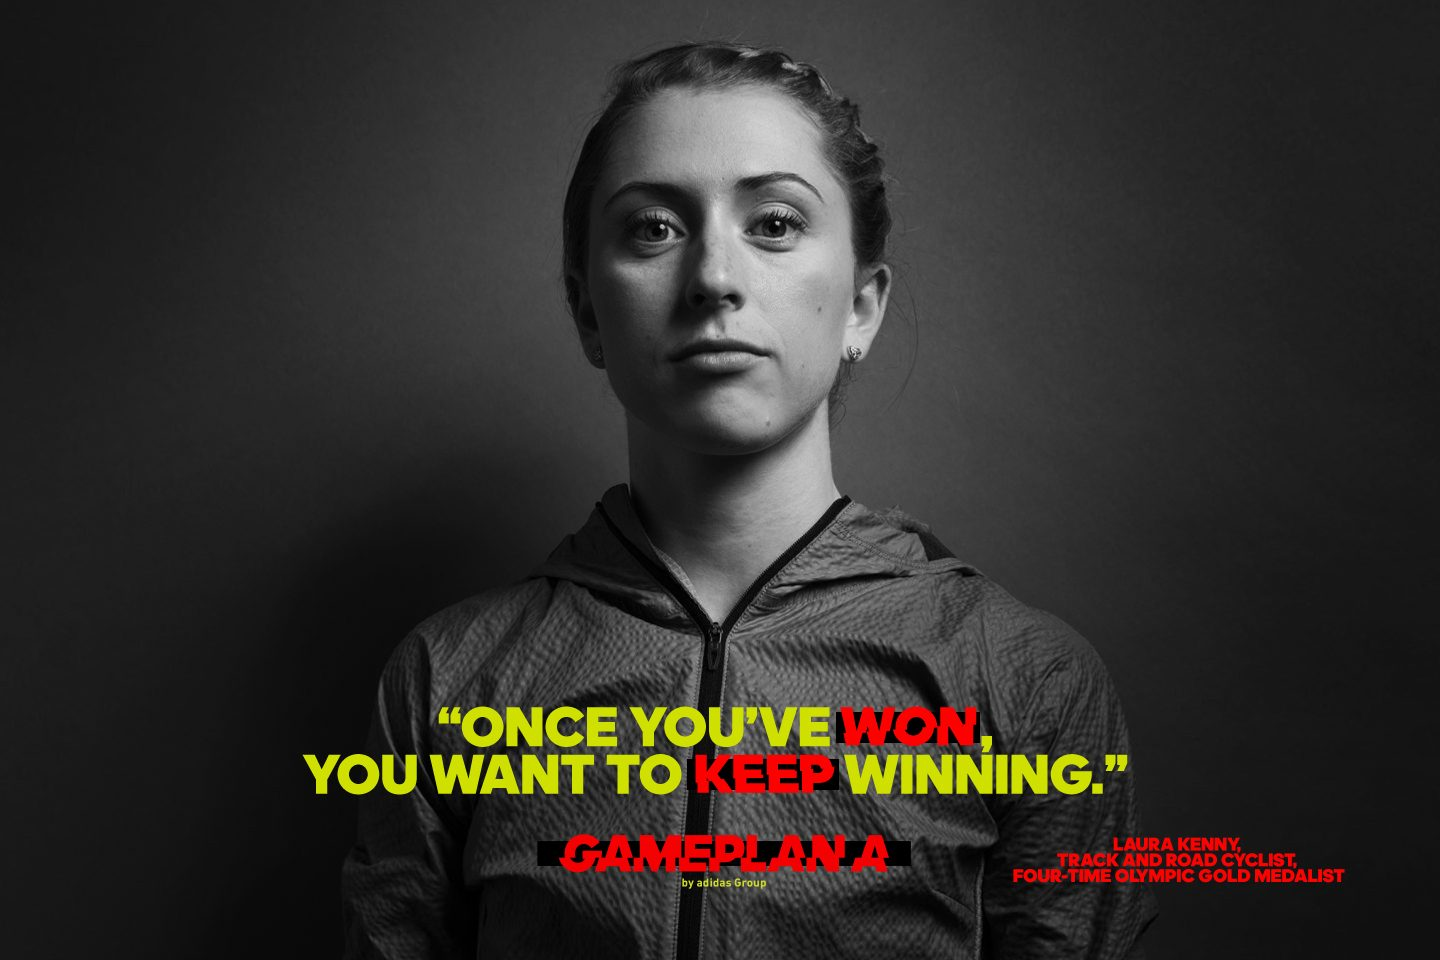 laura kenny track and road cyclist olympic gold medalist quote